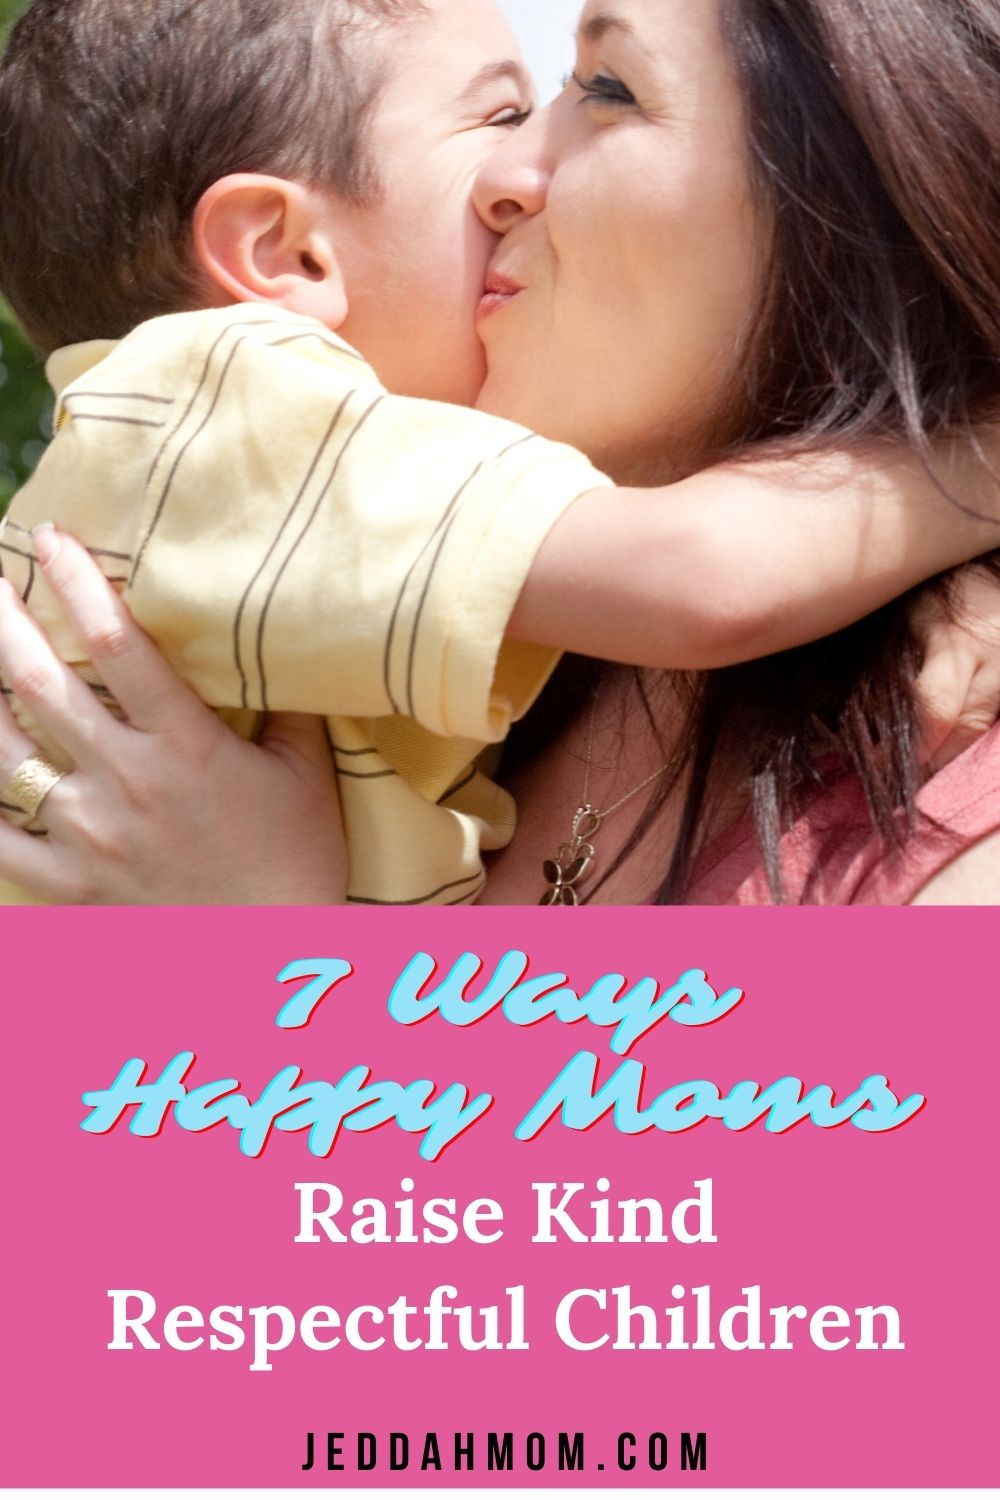 7-WAYS-HAPPY-MOMS-RAISE-KIND-RESPECTFUL-CHILDREN by just being themselves jeddahMom